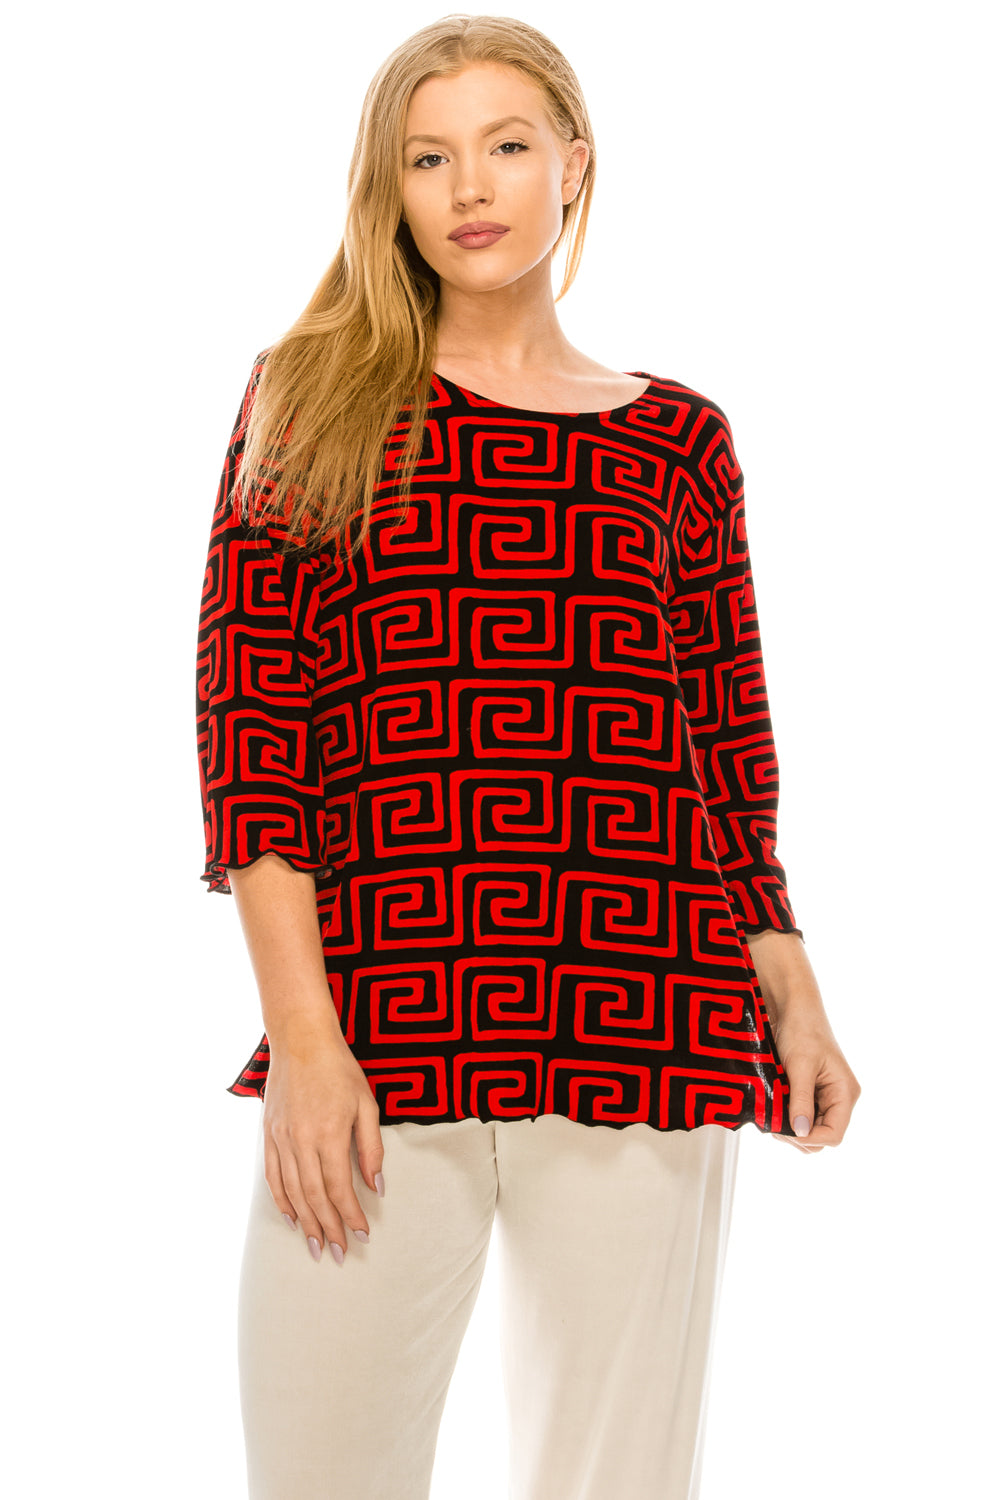 Jostar Women's Stretchy Merrow Top Three Quarter Print, 158BN-QP-W187 - Jostar Online